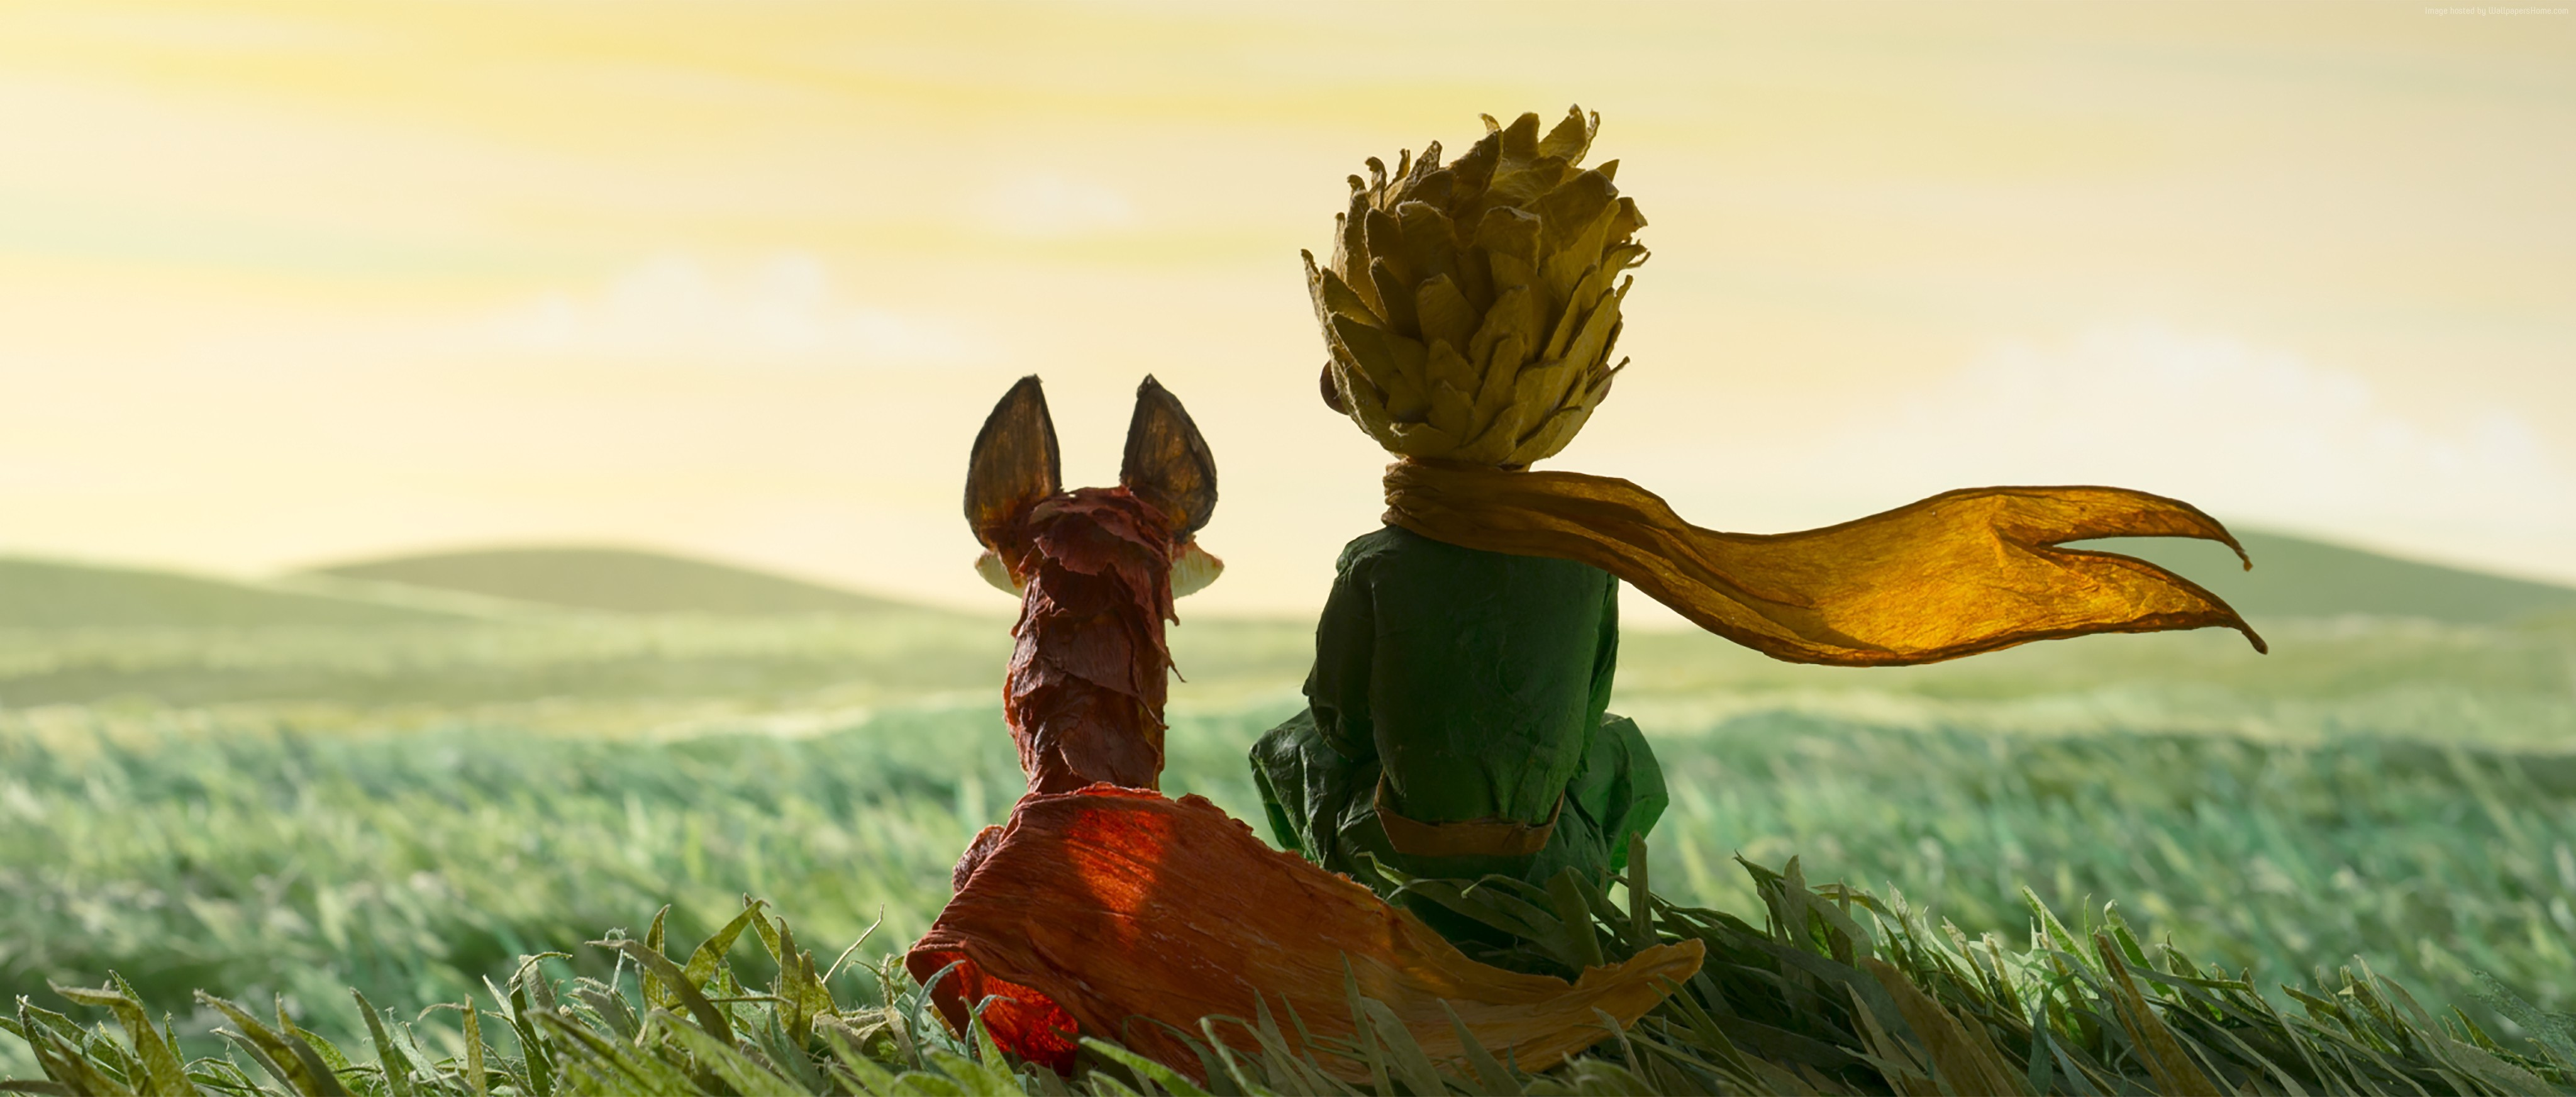 The Little Prince Wallpaper